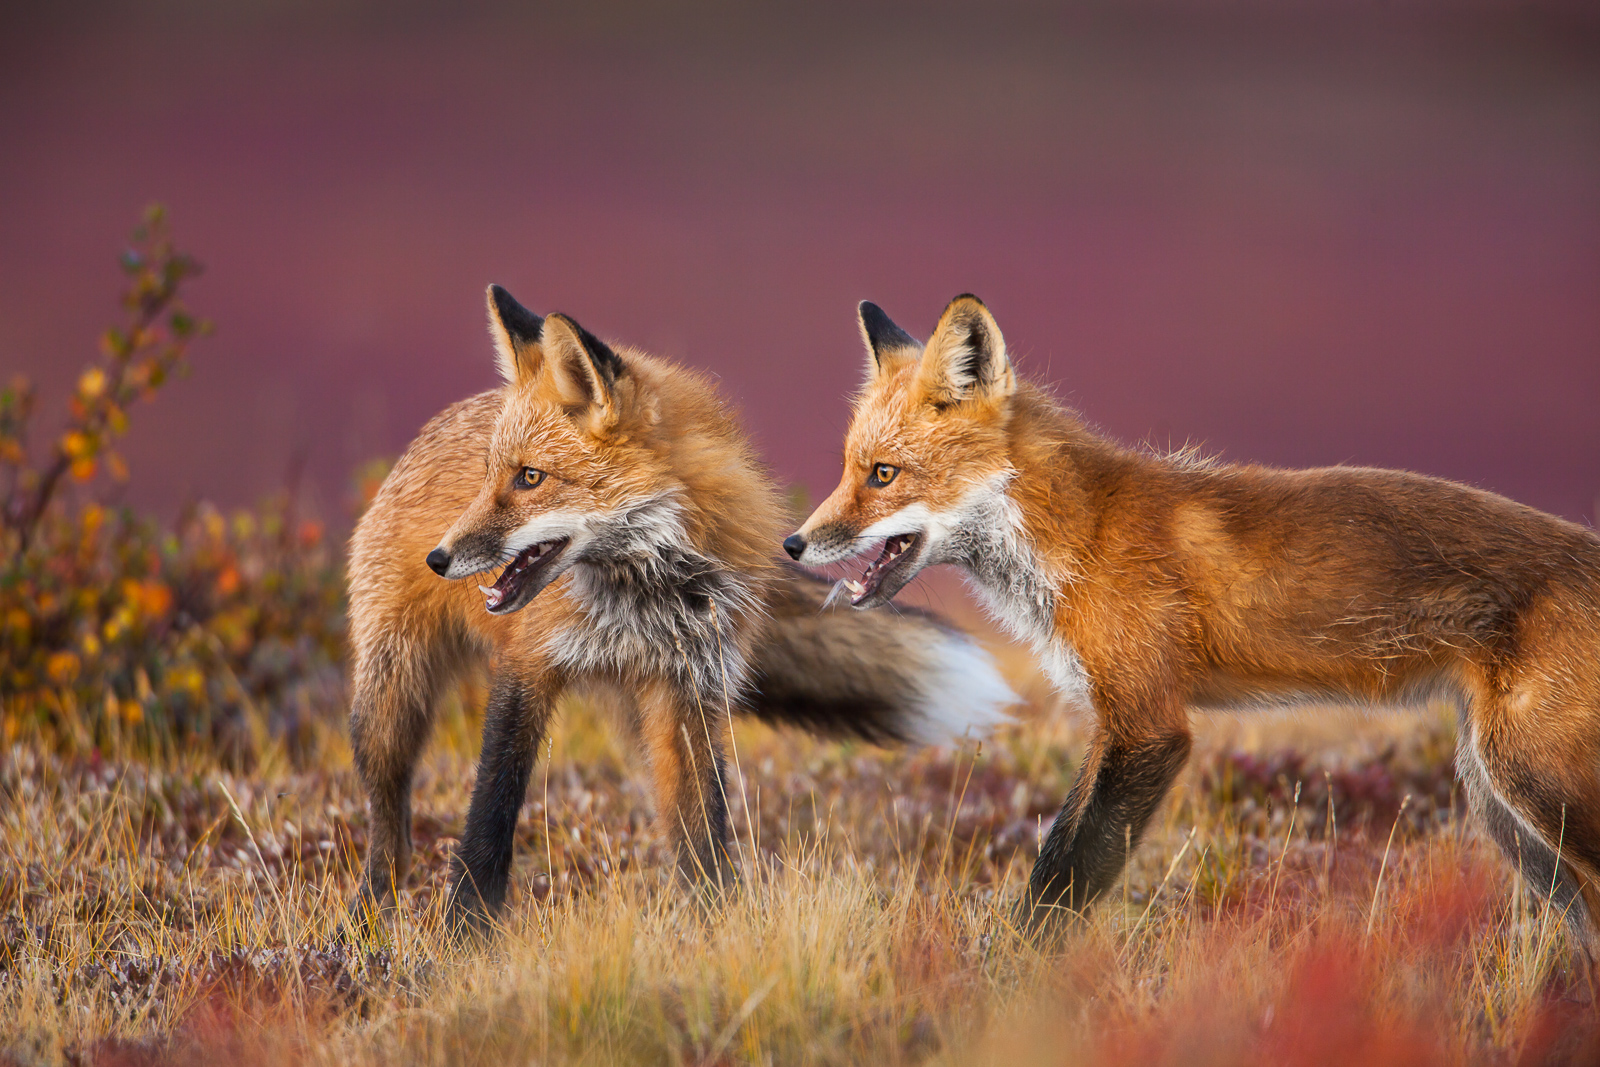 All smiles are found on these two red tail foxes as they take a break from a playful game of marco-polo in the tundra foliage...